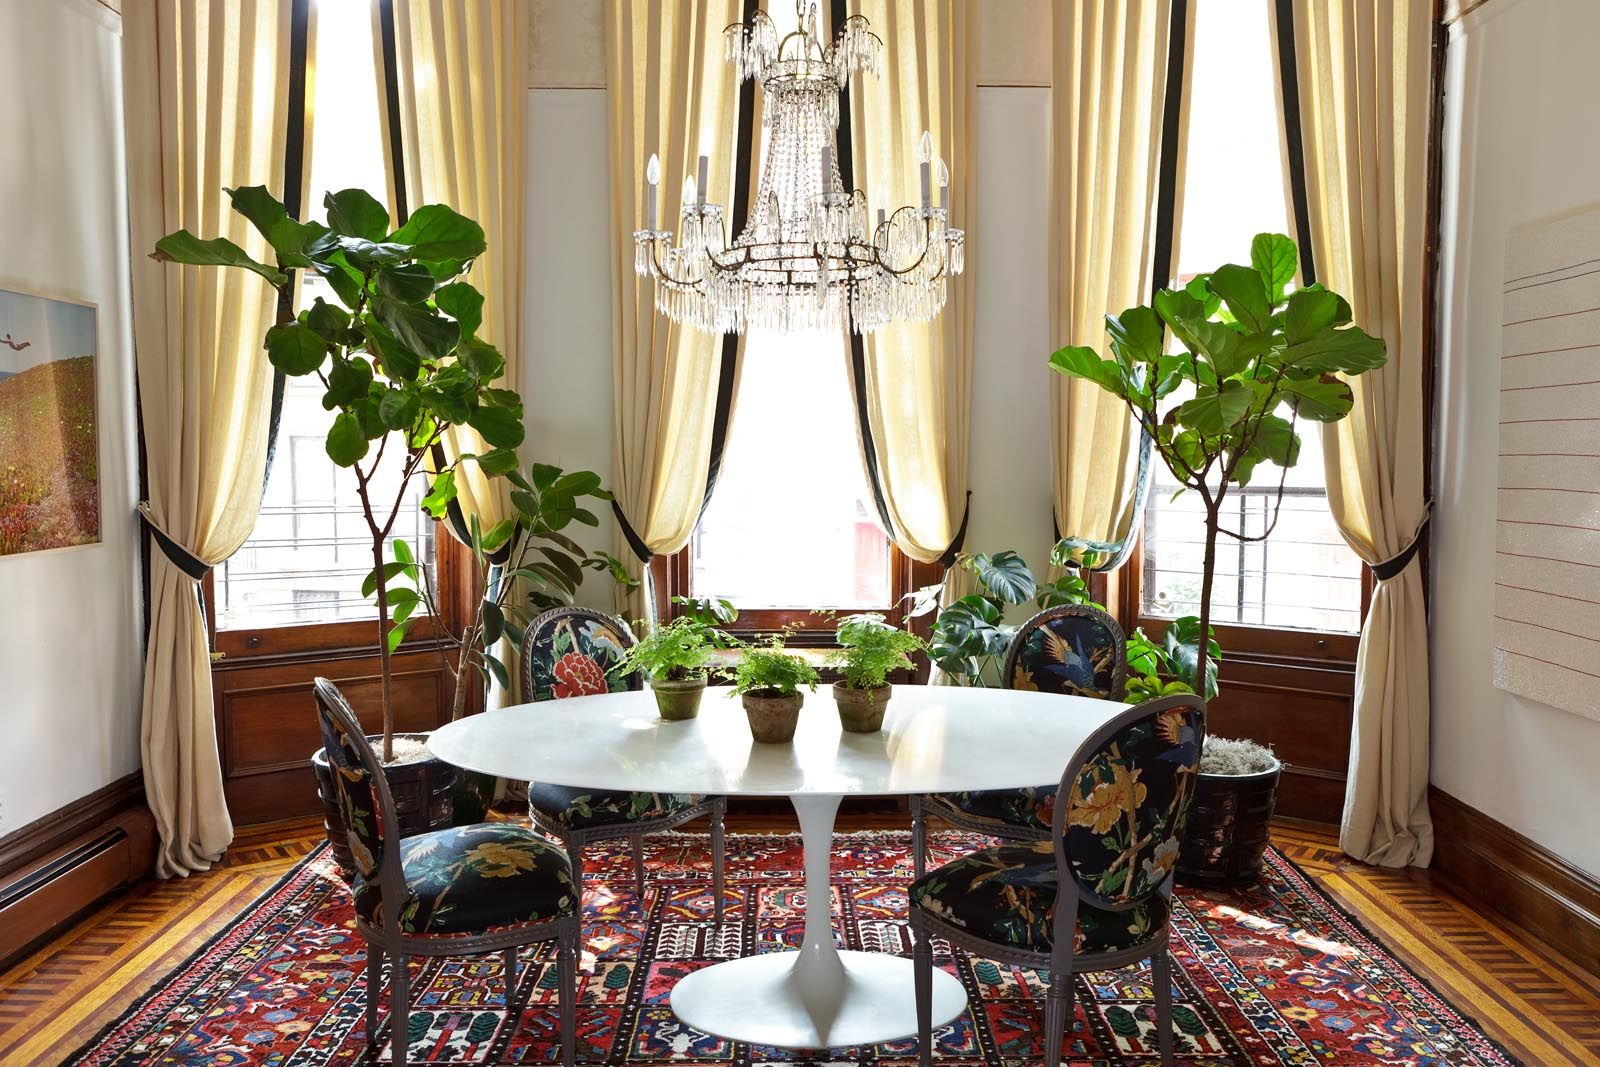 25 Rooms Brought To Life With Decorative Plants Greenery